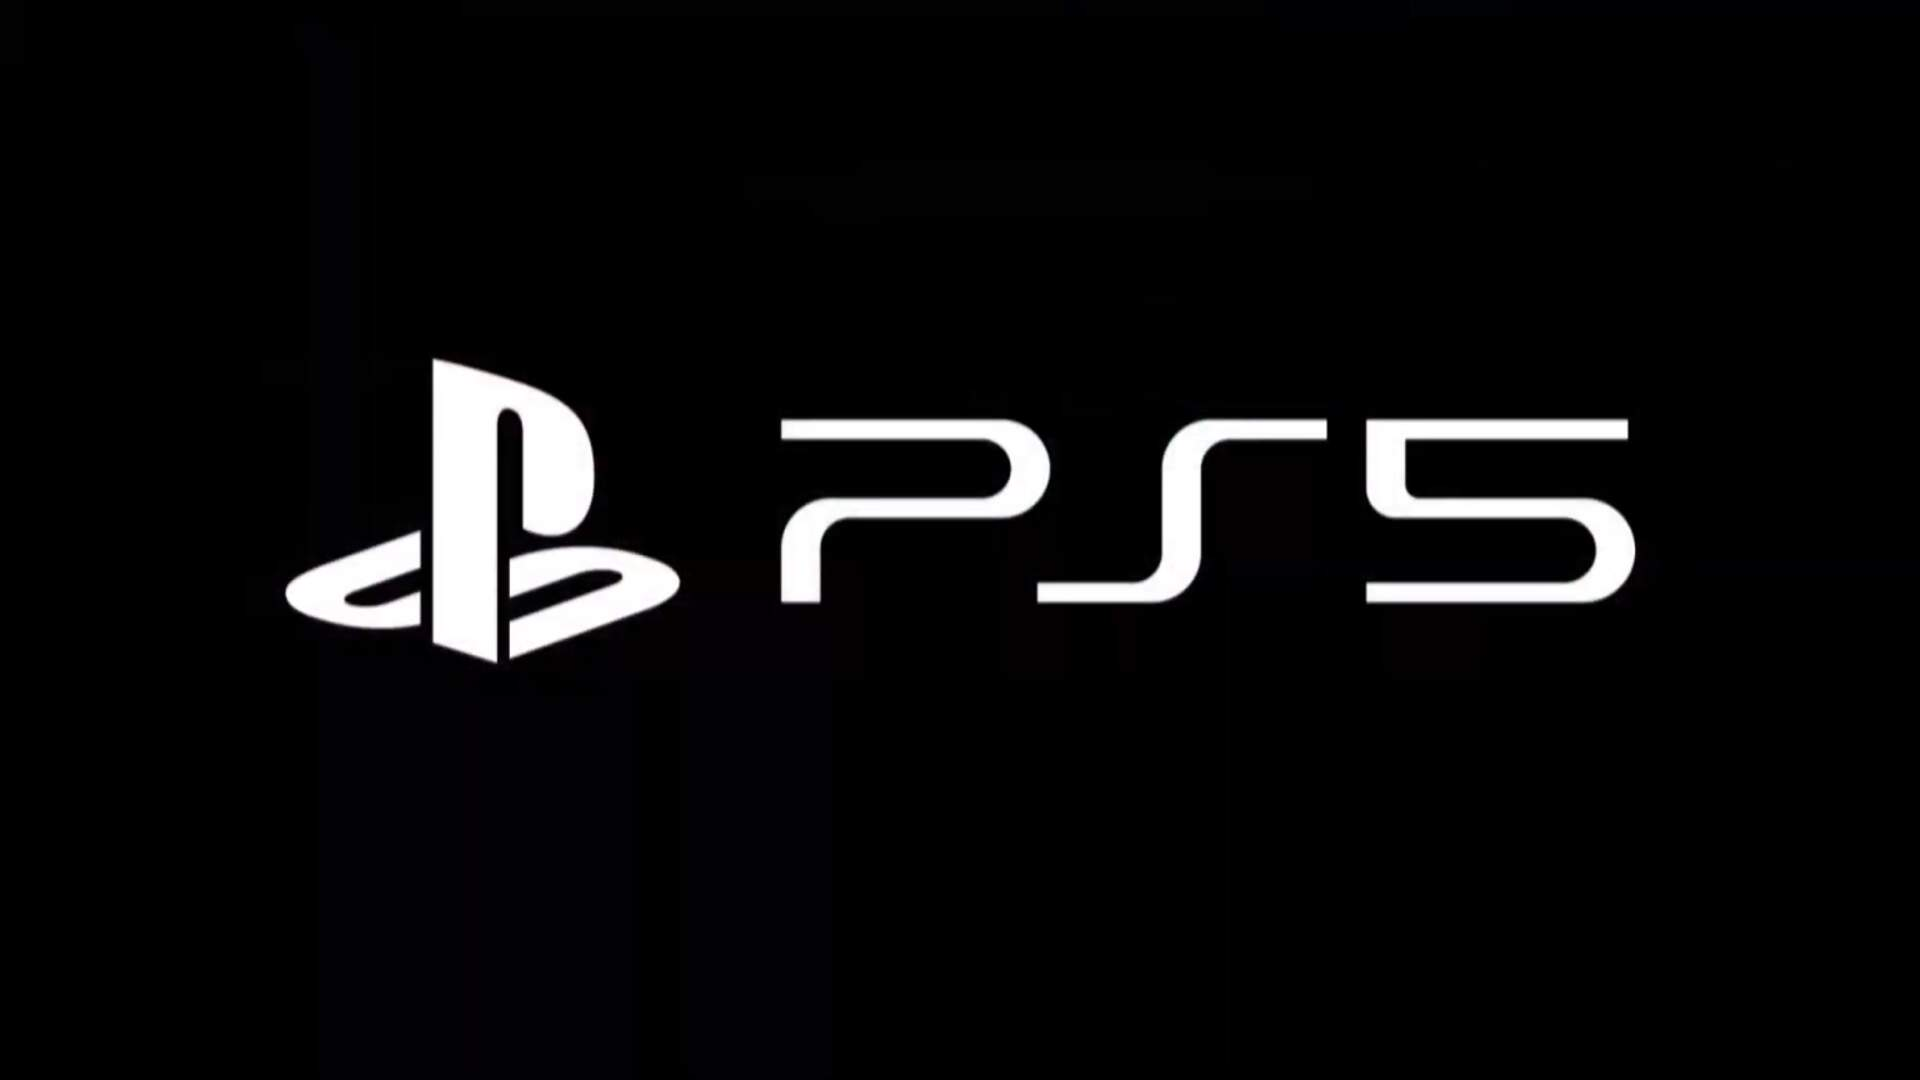 For Whatever Reason, the PS5 Logo Has More Than 5 Million Likes on Instagram